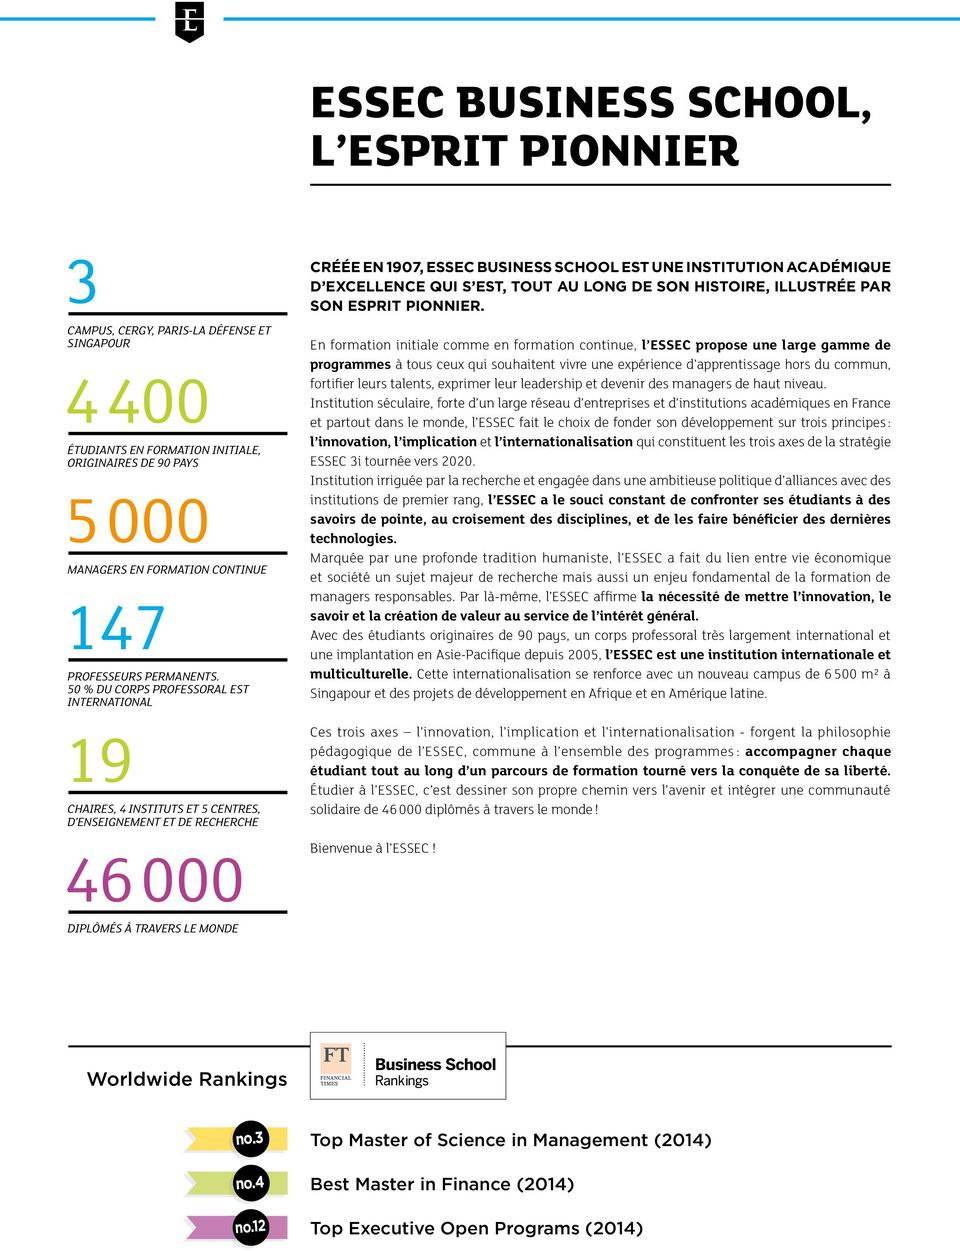 50 % DU CORPS PROFESSORAL EST INTERNATIONAL 19 CHAIRES, 4 INSTITUTS ET 5 CENTRES, D ENSEIGNEMENT ET DE RECHERCHE 46 000 CRÉÉE EN 1907, ESSEC BUSINESS SCHOOL EST UNE INSTITUTION ACADÉMIQUE D